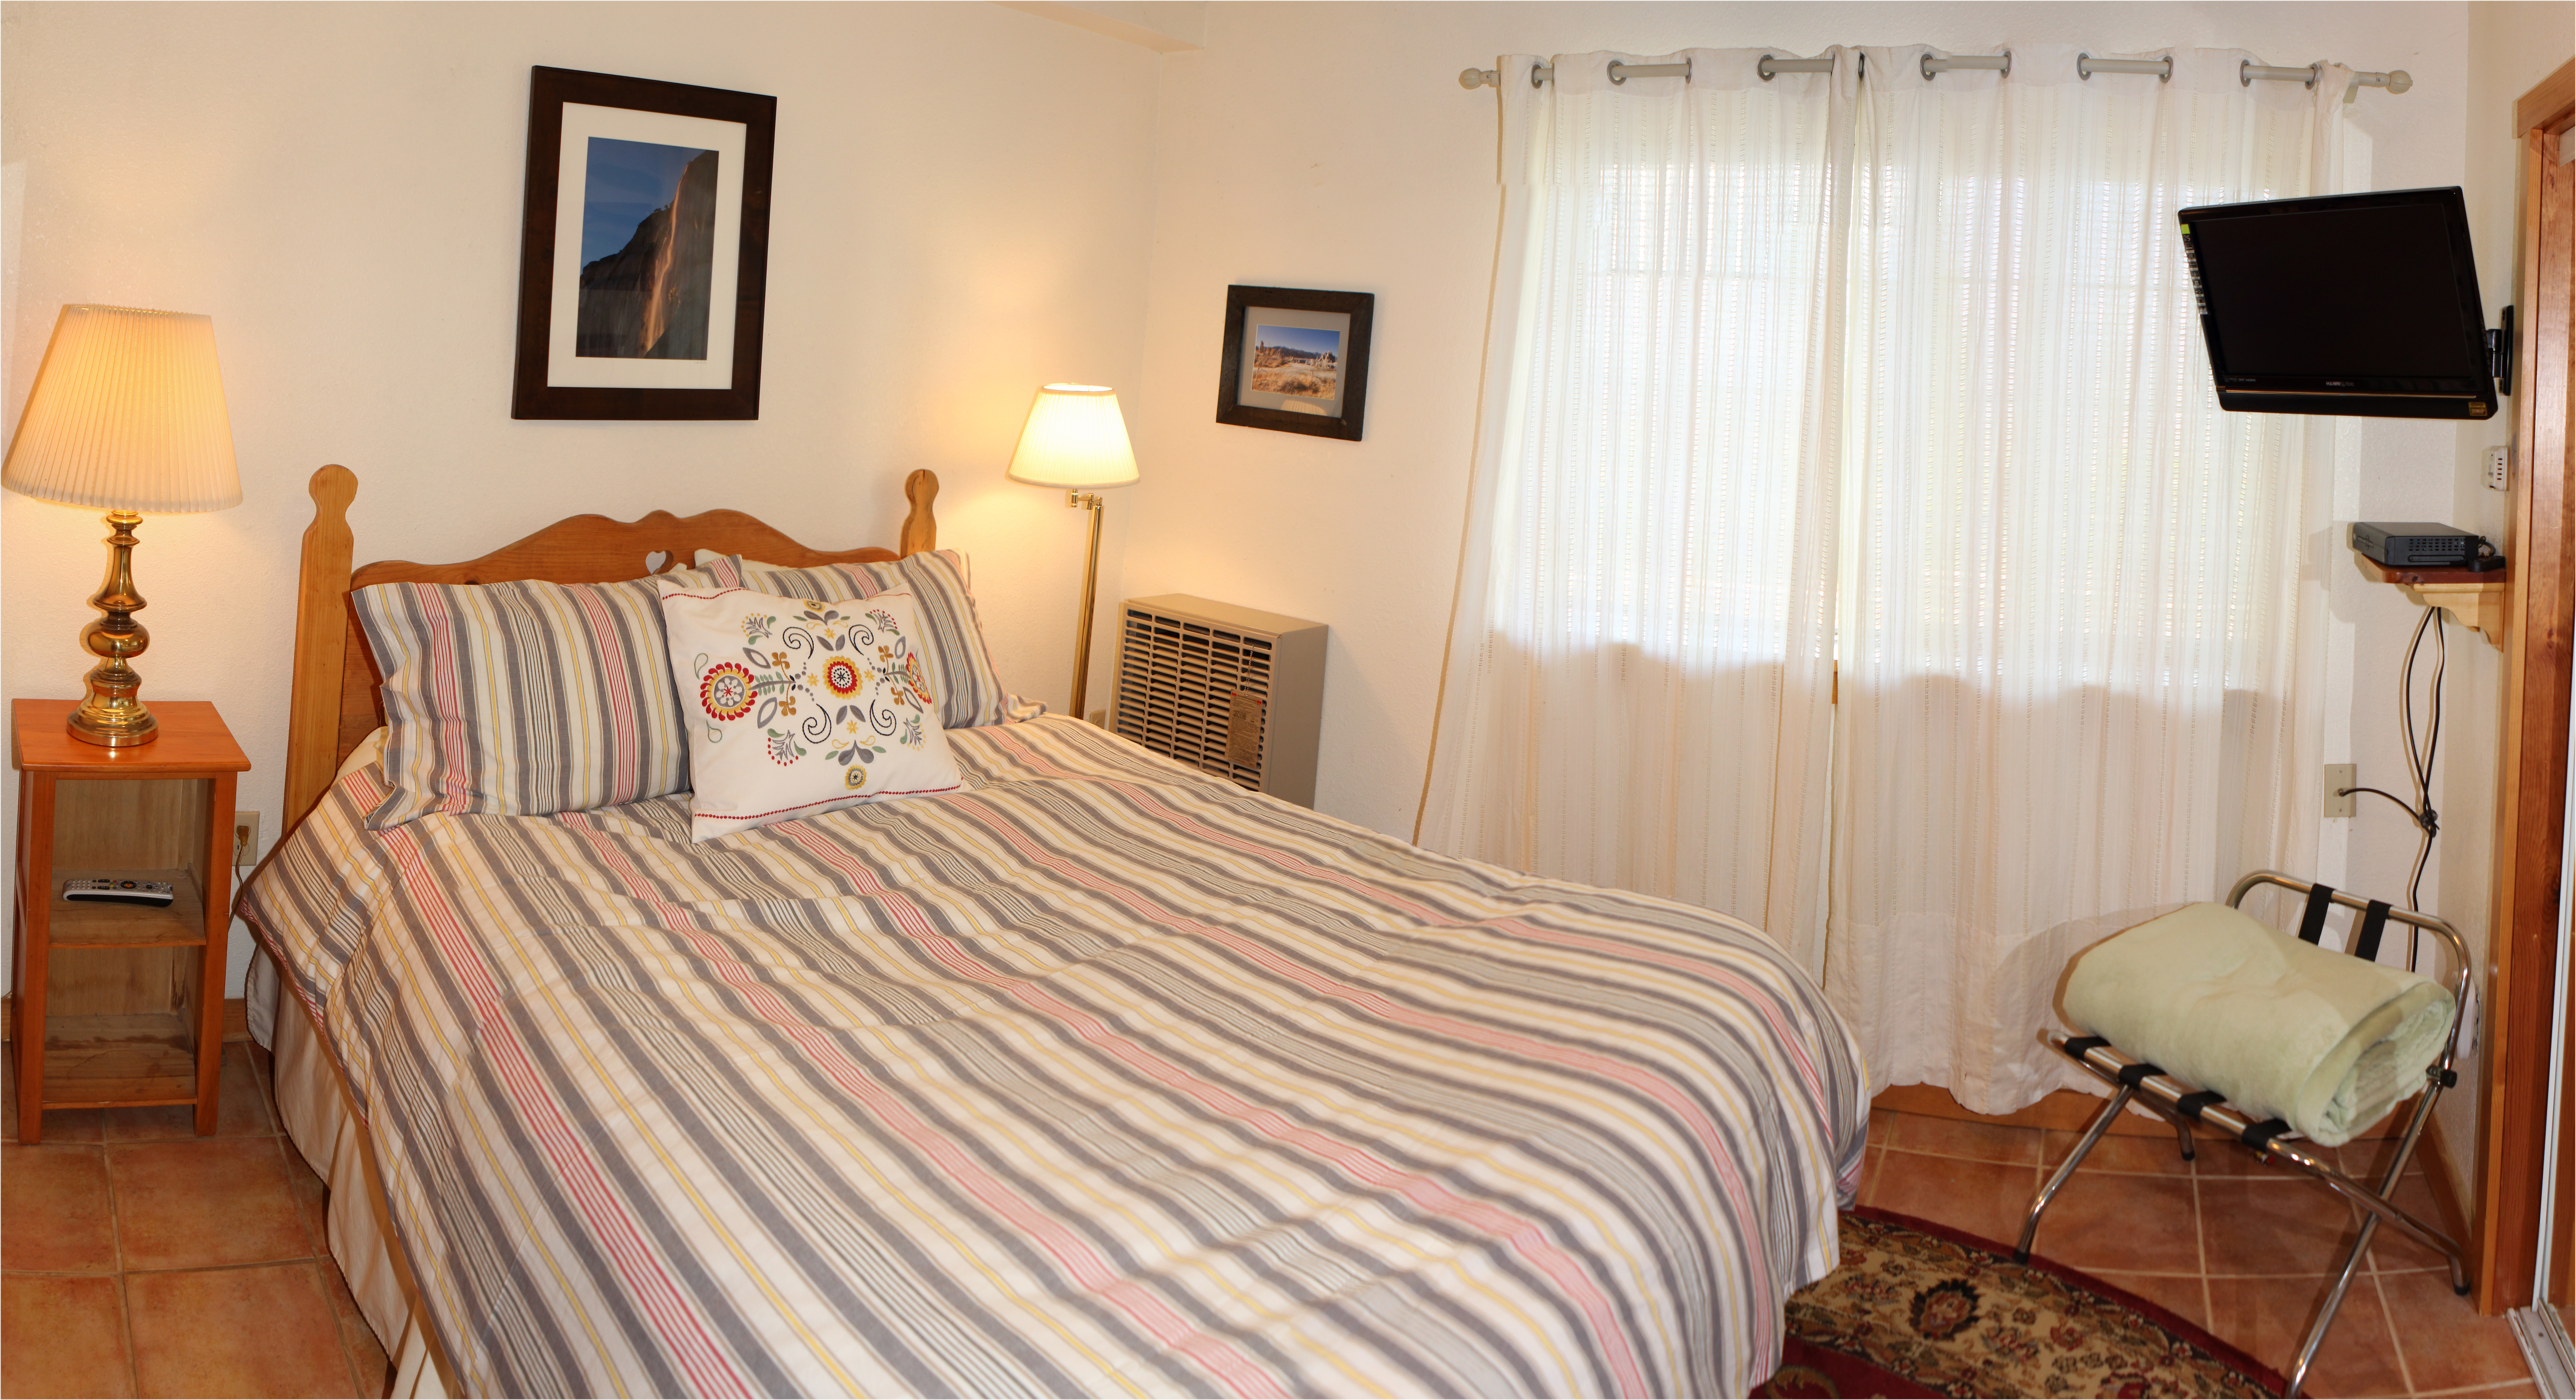 Mono is on the lower level of the Lodge with sunrise and mountain views. It has a Queen bed and an in-room bath and shower. There is a flat screen Direct TV and individual climate control.